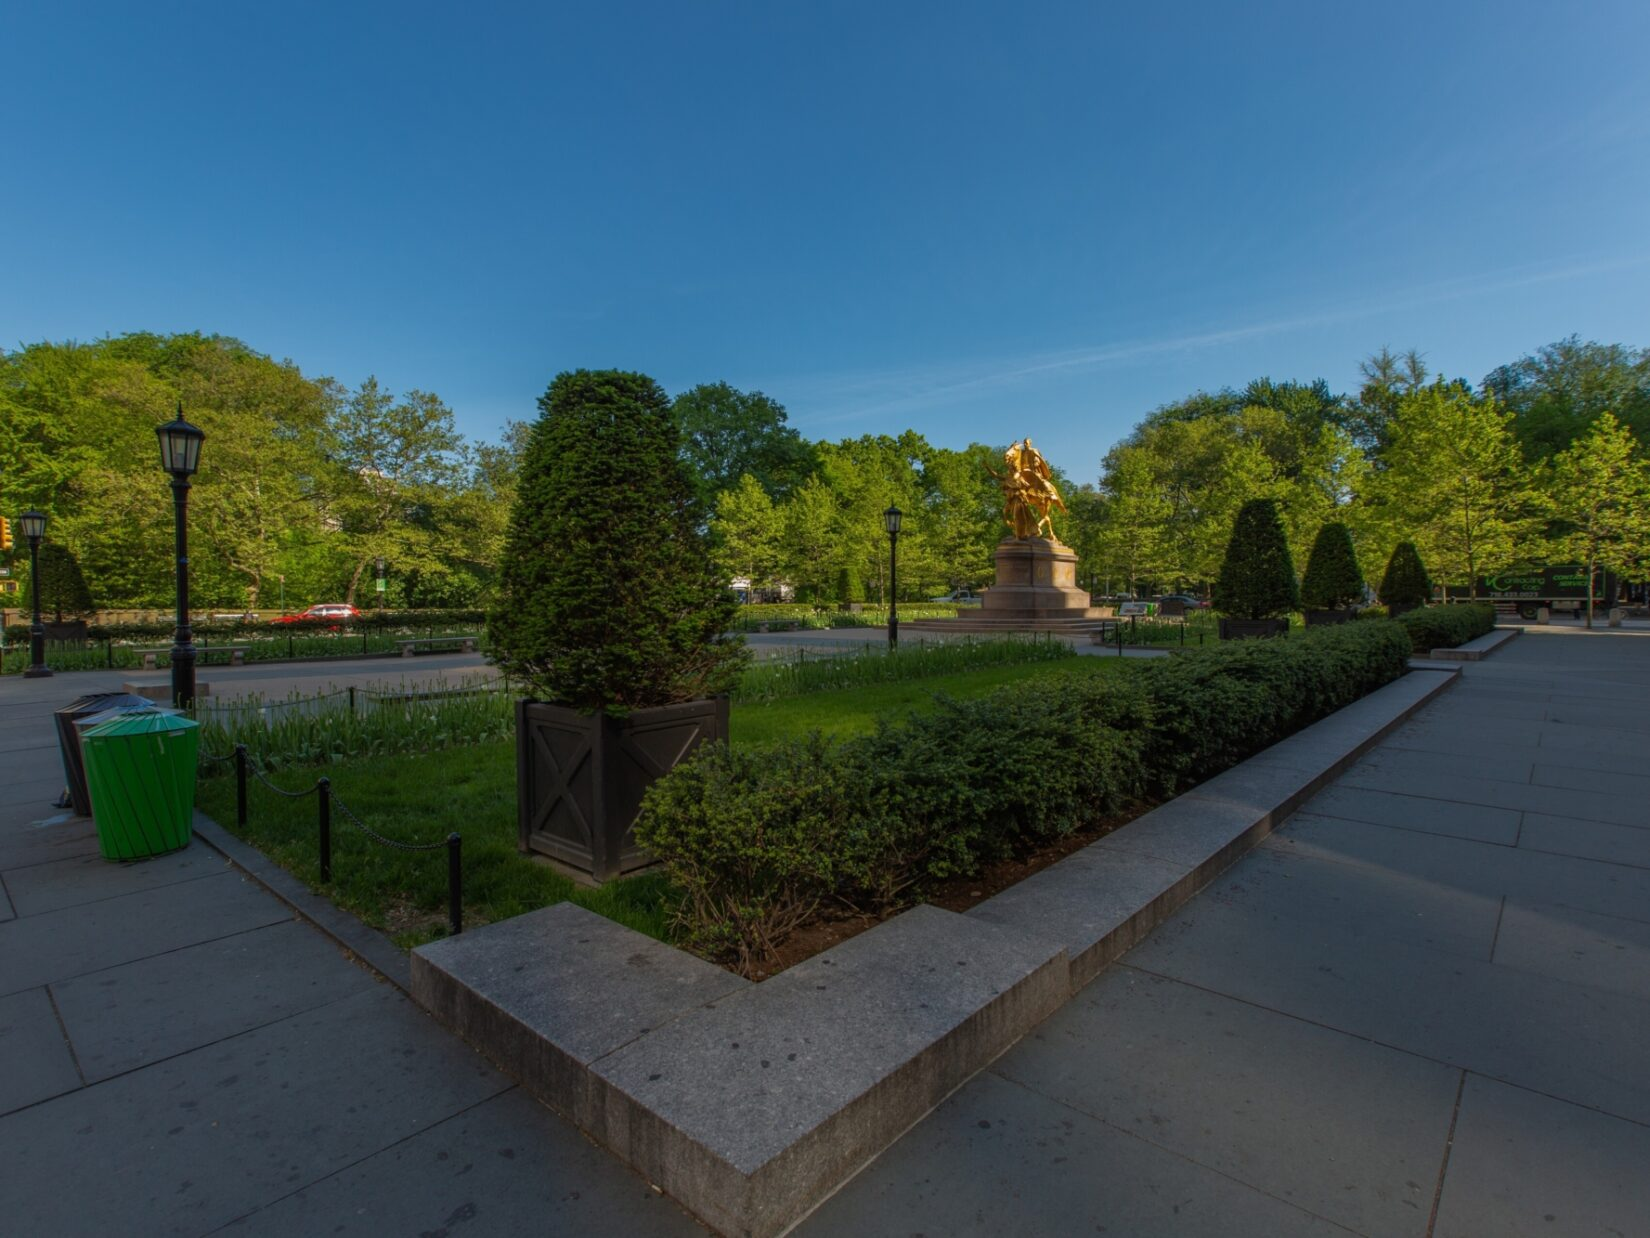 A view of Grand Army Plaza showing the equestrian statue of General Sherman